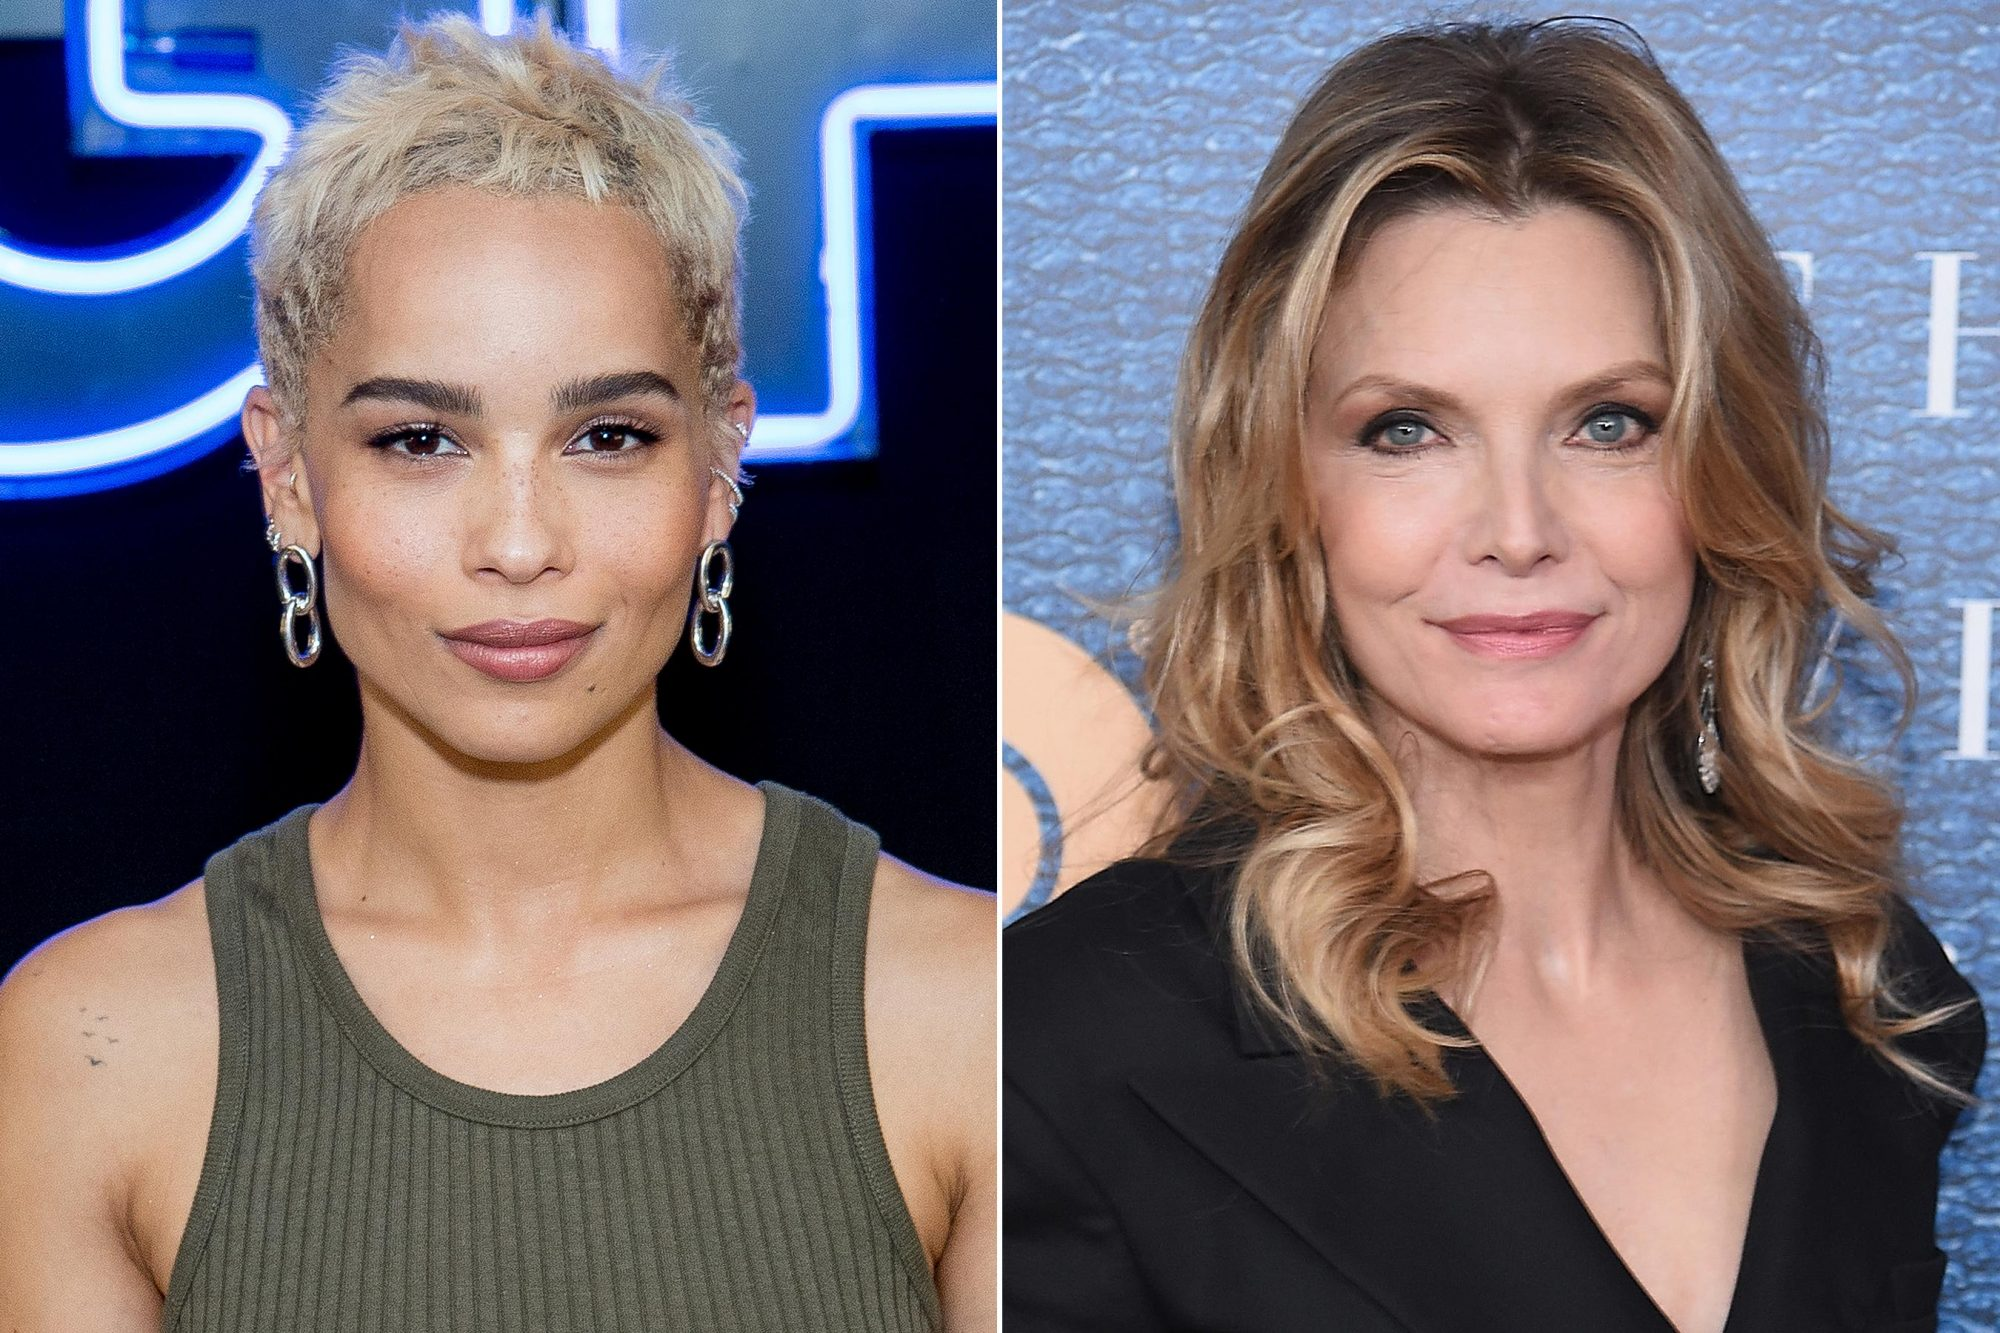 Zoe Kravitz, Michelle Pfeiffer